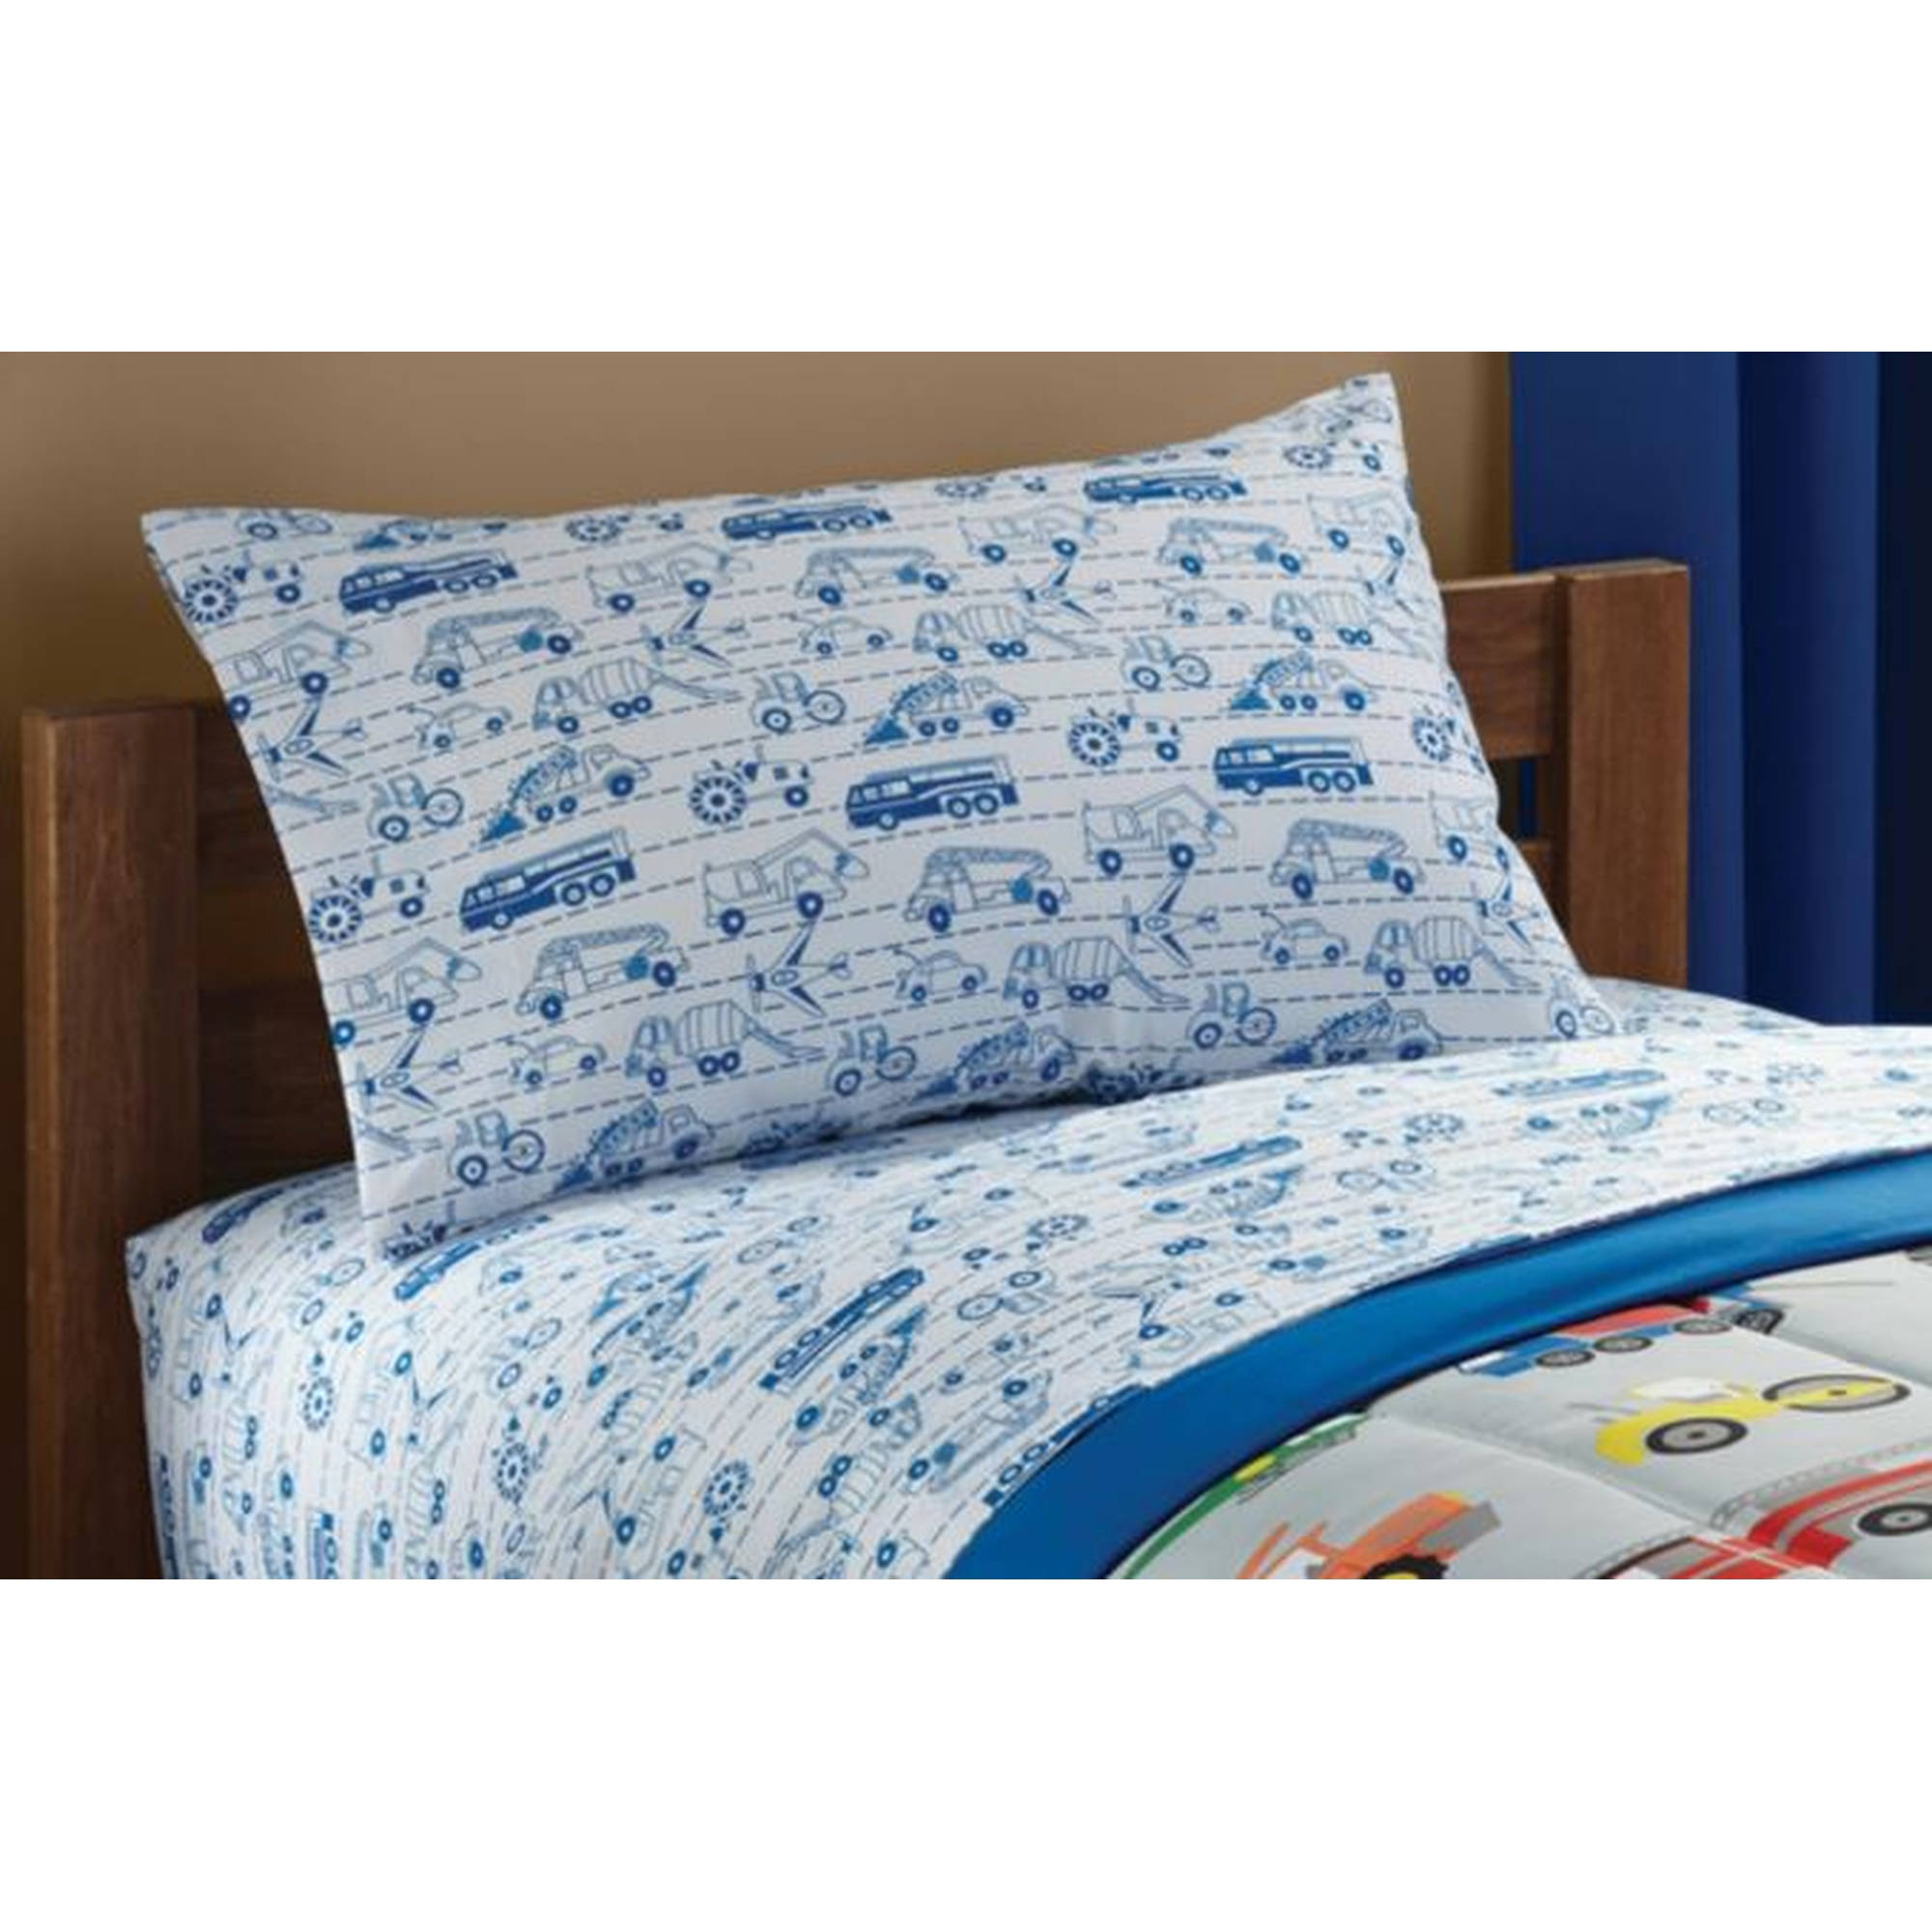 Mainstays Kids Transportation Coordinating Printed Sheet Set